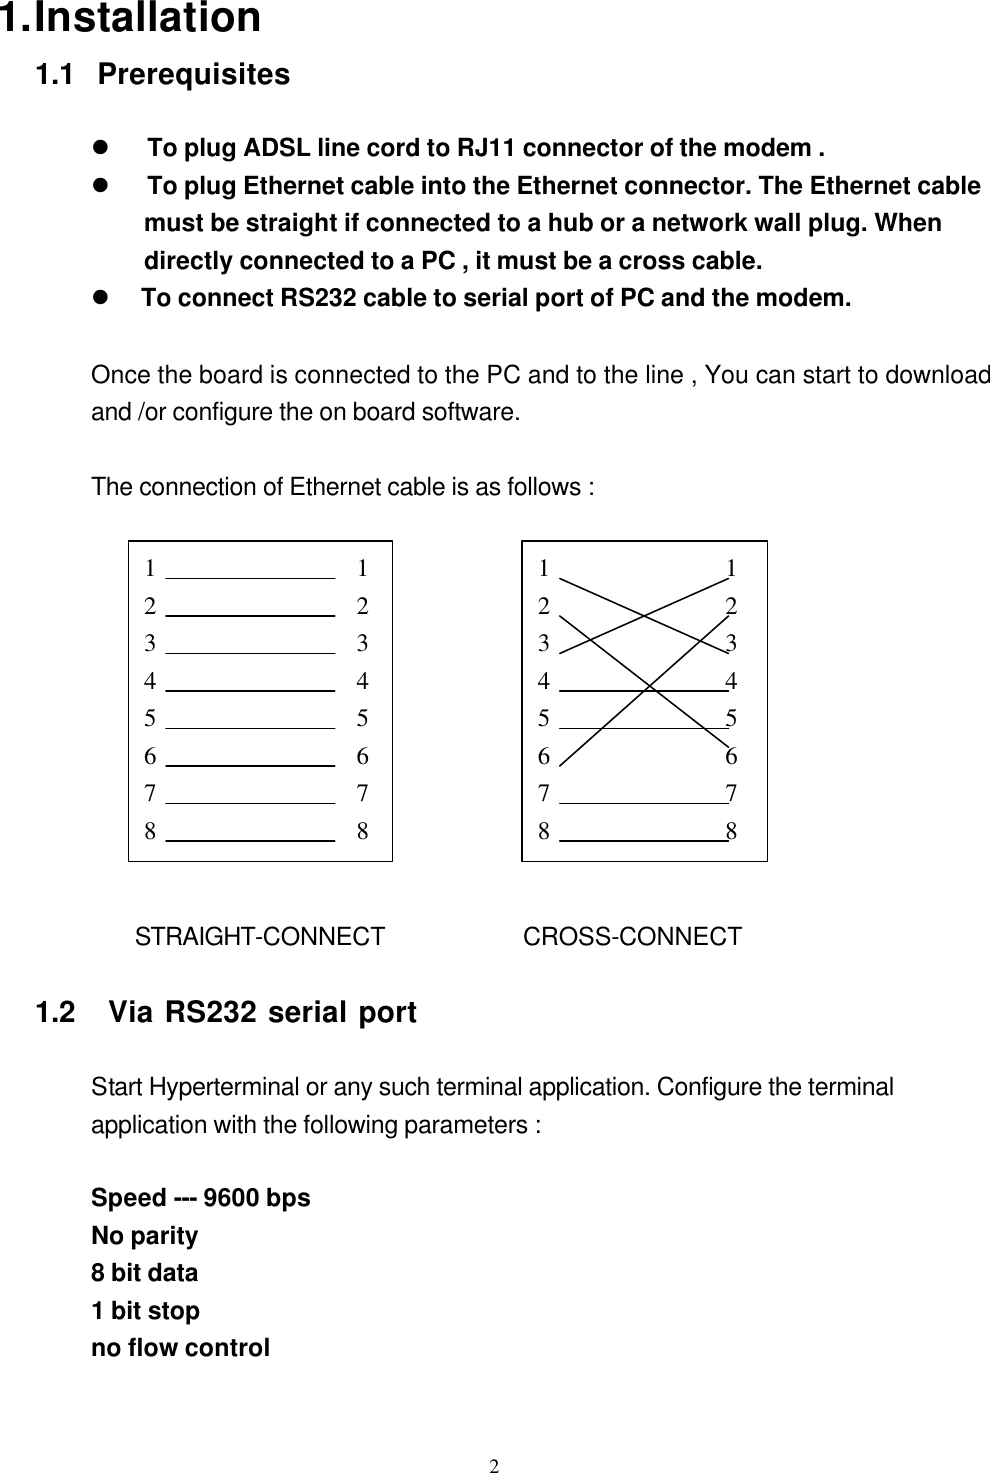 Uat Ar 5153 Adsl Router Bridge User Manual Rev0 1 Rj11 Wiring Diagram For Installation 11 Prerequisites L To Plug Line Cord Connector Of The